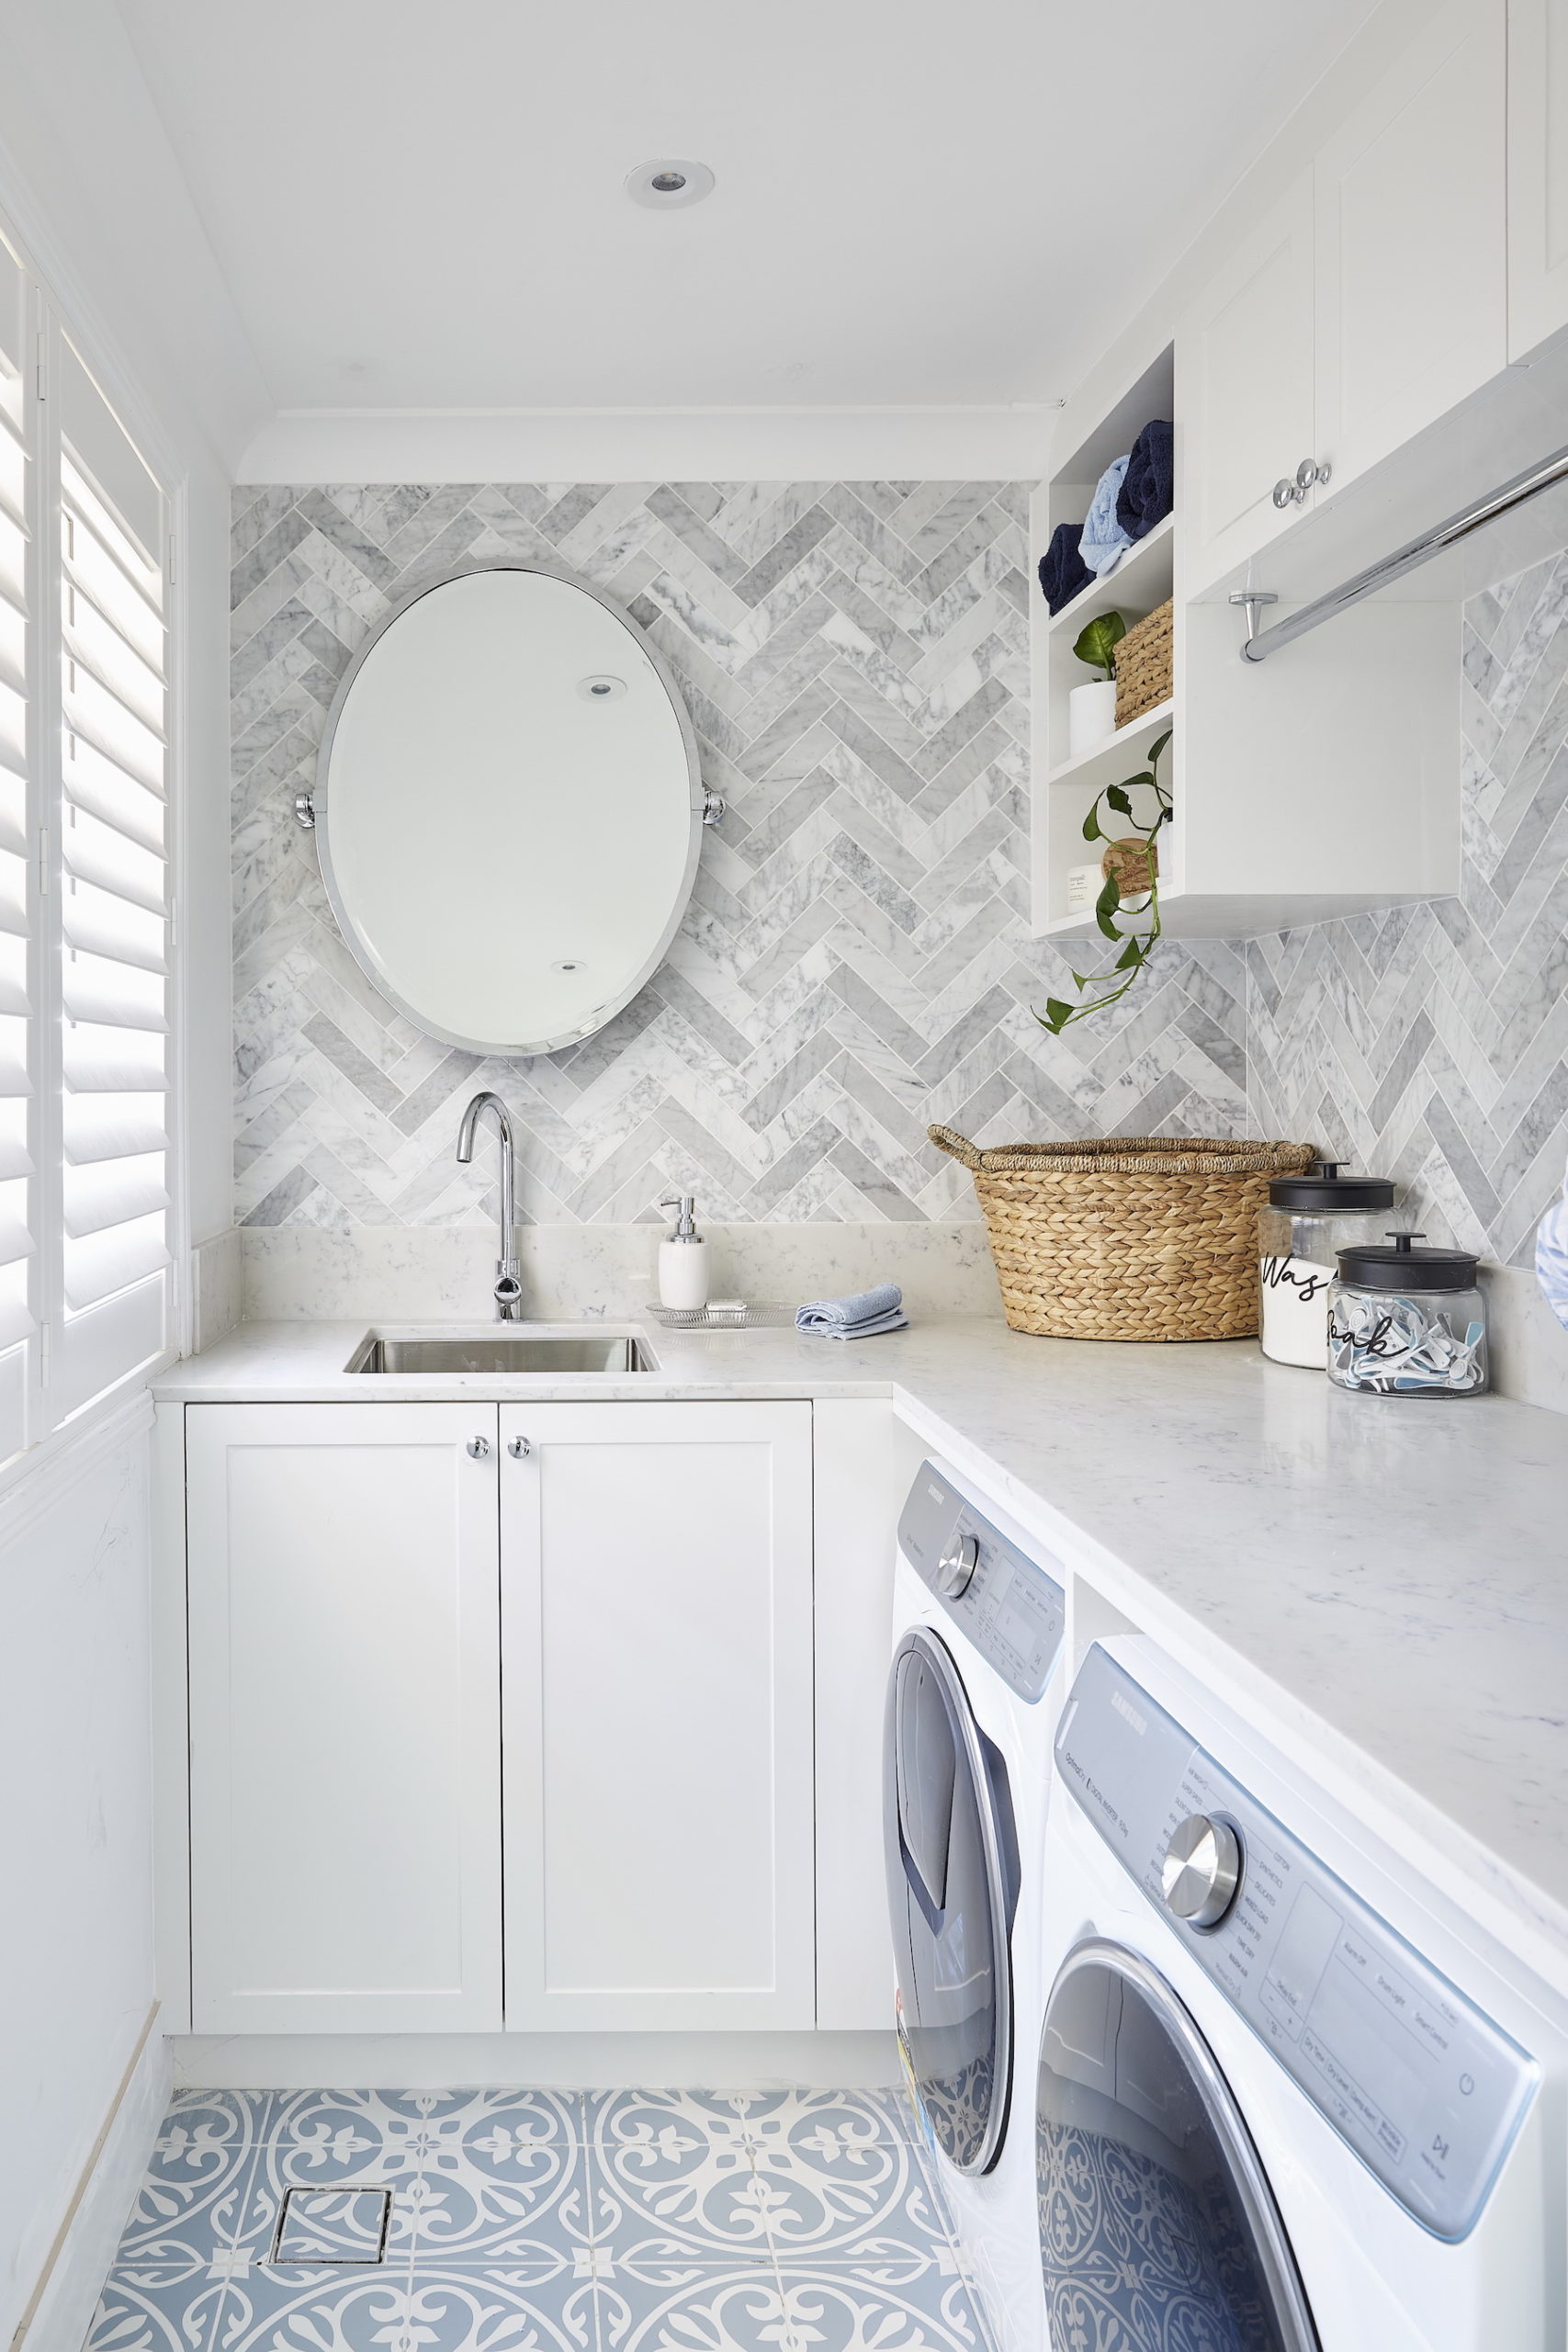 house rules 2020 lenore white laundry with marble herringbone tiles